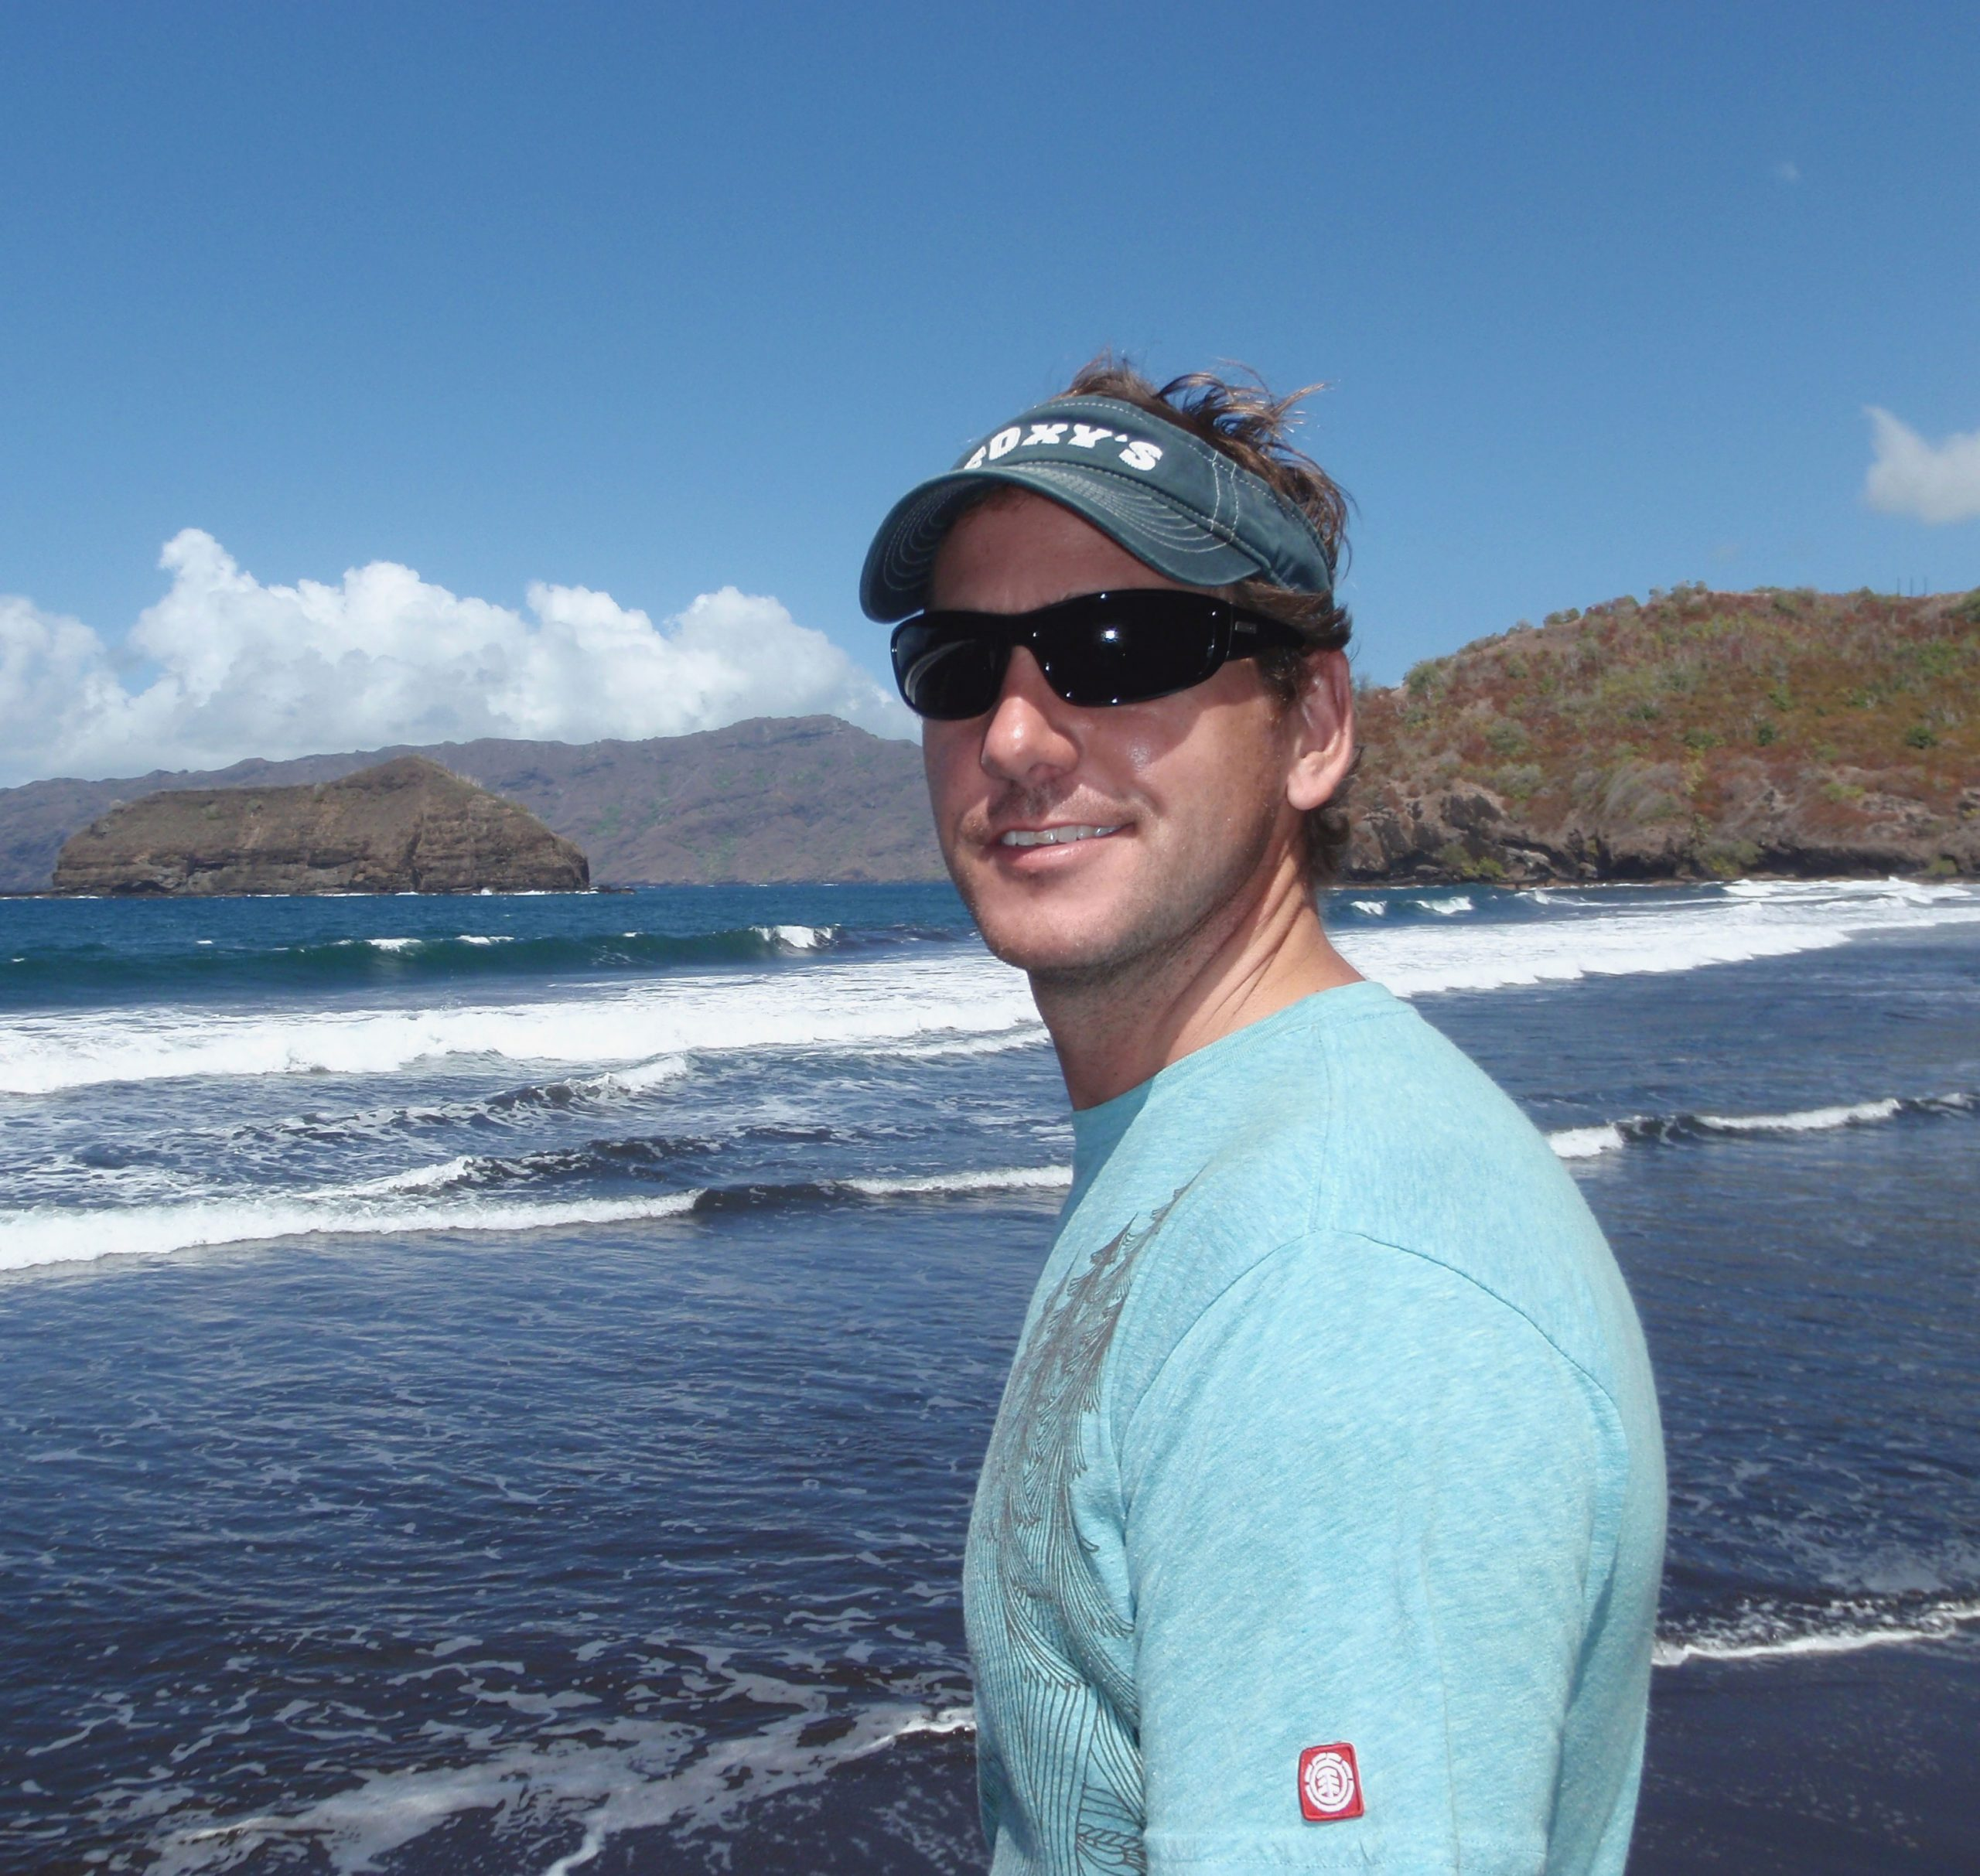 Photo of man with sunglassses in front of waves on a beach in French Polynesia